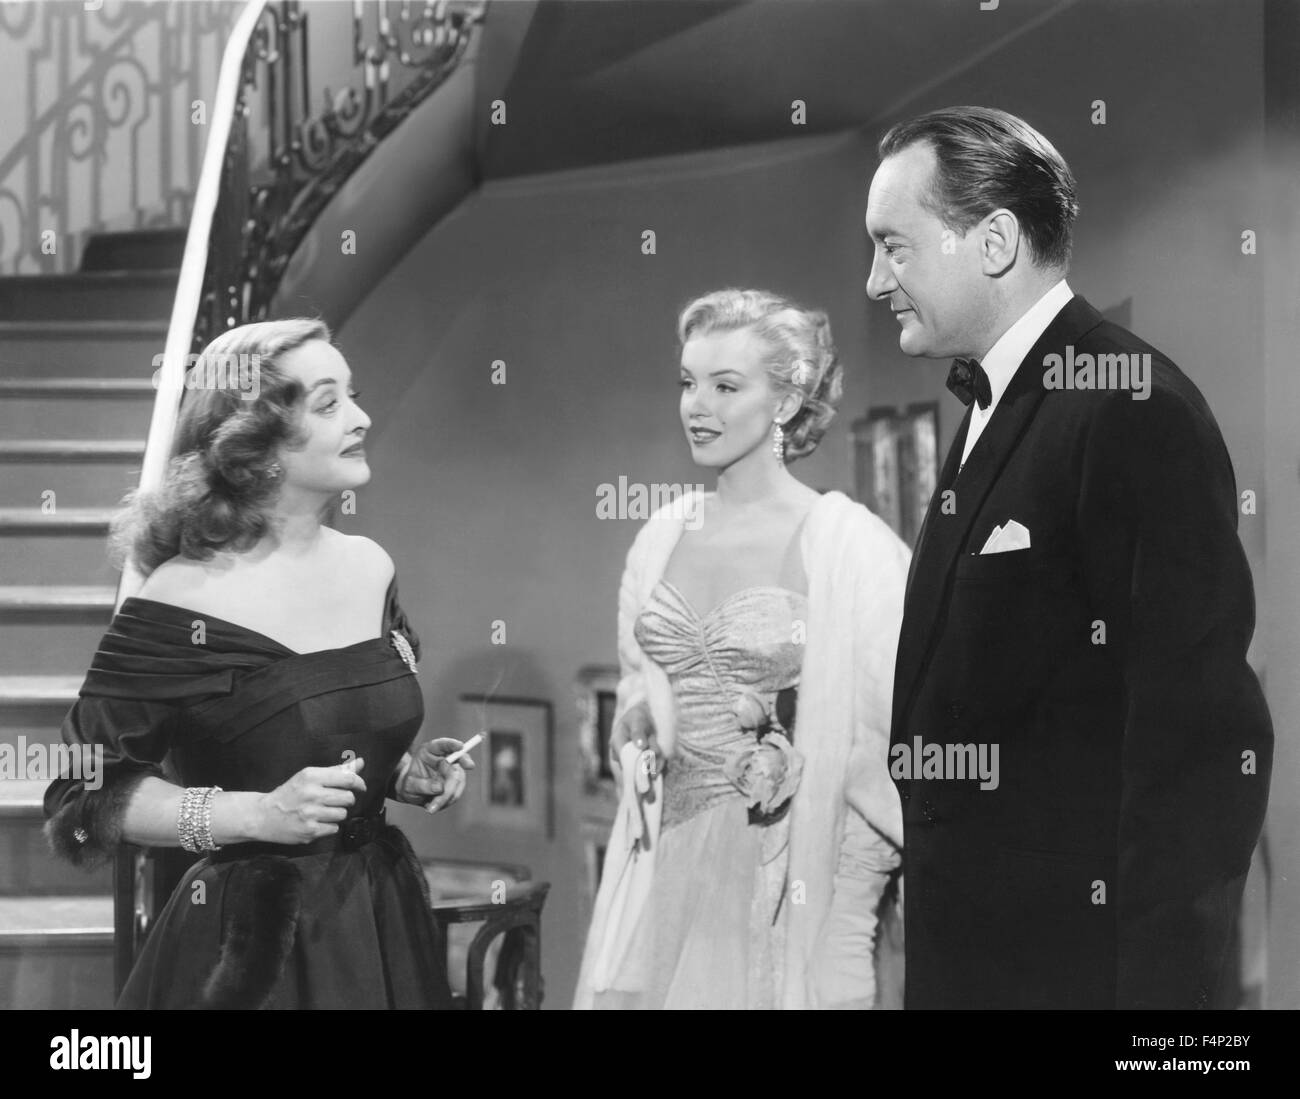 Susan Griffiths As Marilyn Monroe Stage One Promotions: Bette Davis Actress Stock Photos & Bette Davis Actress